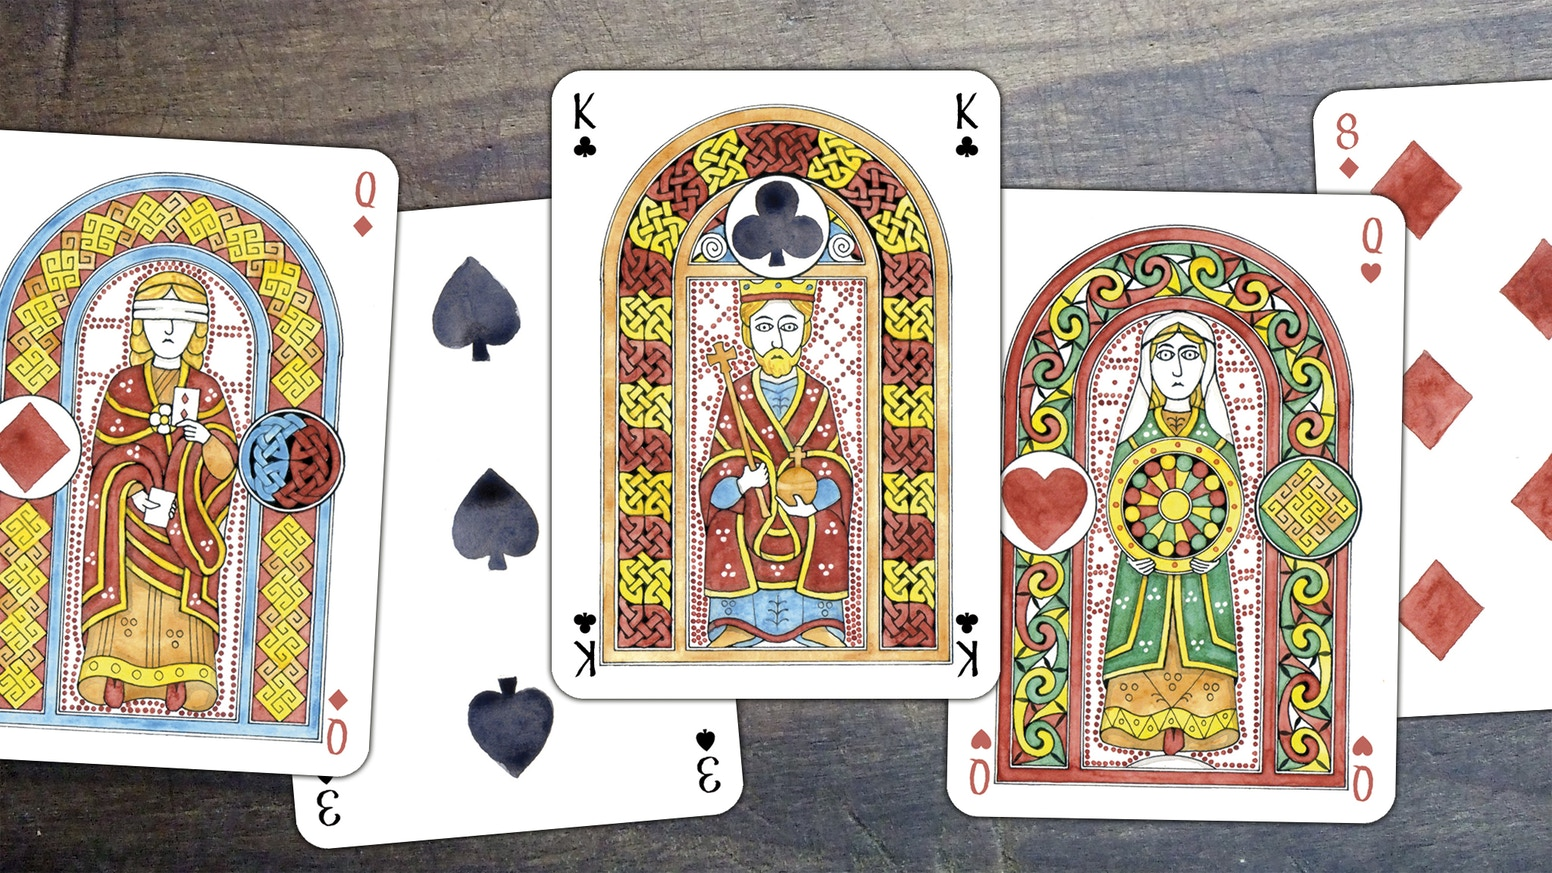 Custom playing cards in the medieval insular art style, illustrated and decorated by Ian Cumpstey